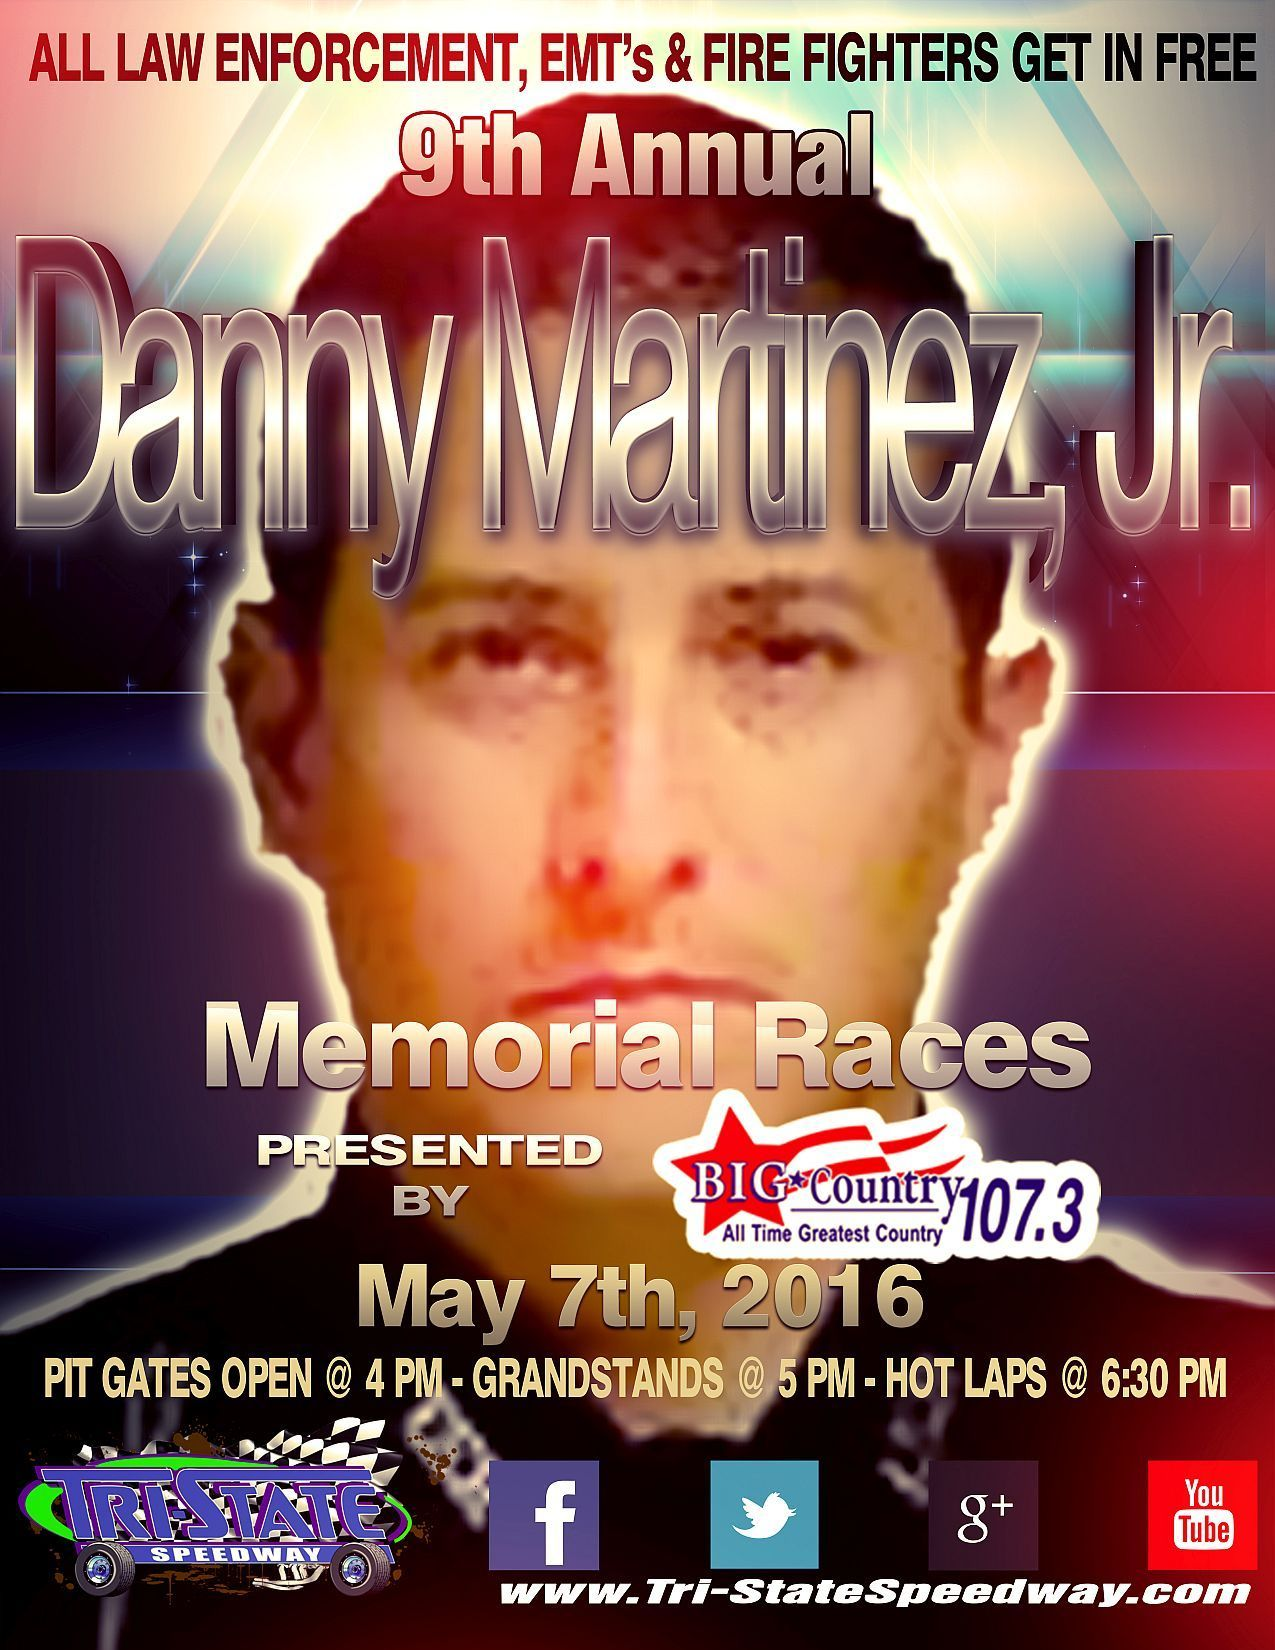 9th Annual Danny Martinez, Jr. Memorial Races and Law Enforcement, EMT and Firefighters Night